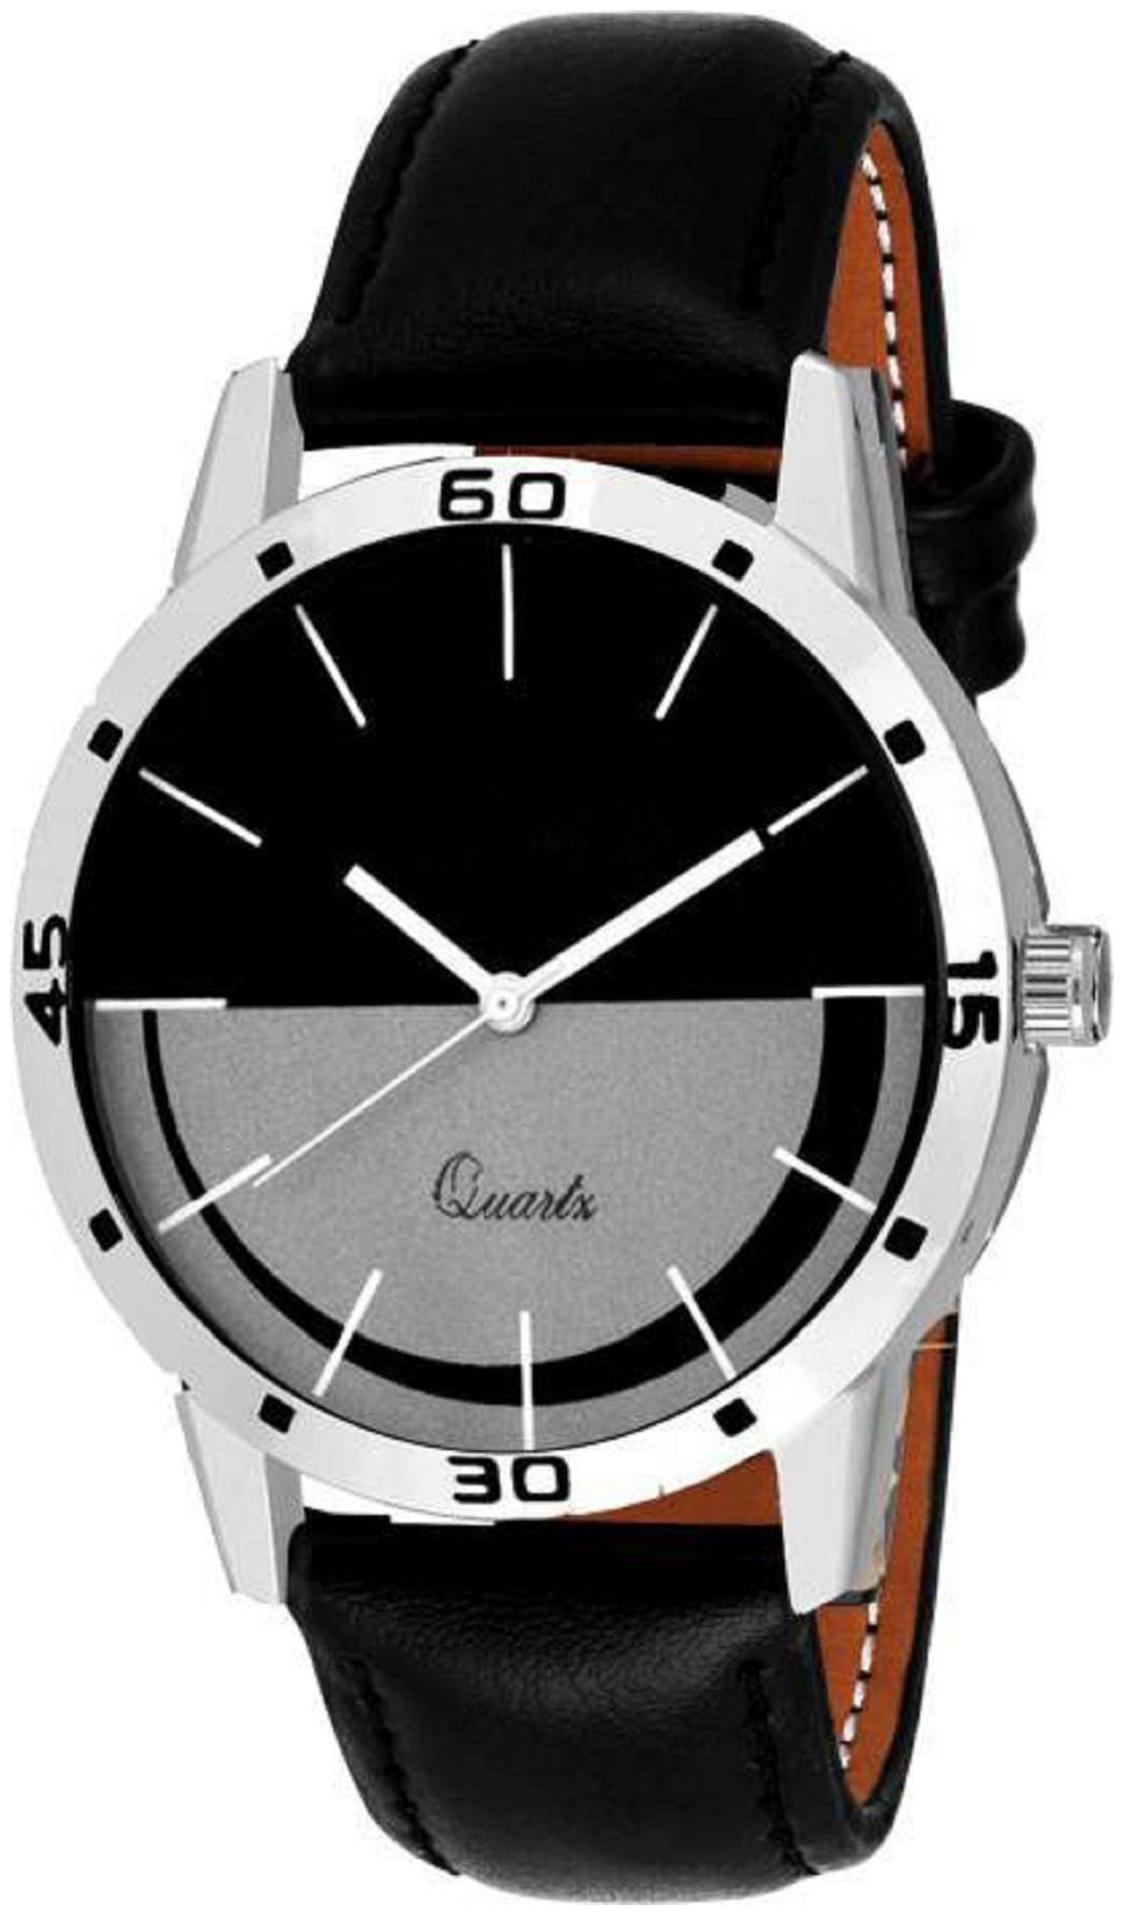 MISSPERFECT STYLISH THUNDER ANALOG WATCHES COMBO FOR MEN'S Watch   For Men by Miss Perfect